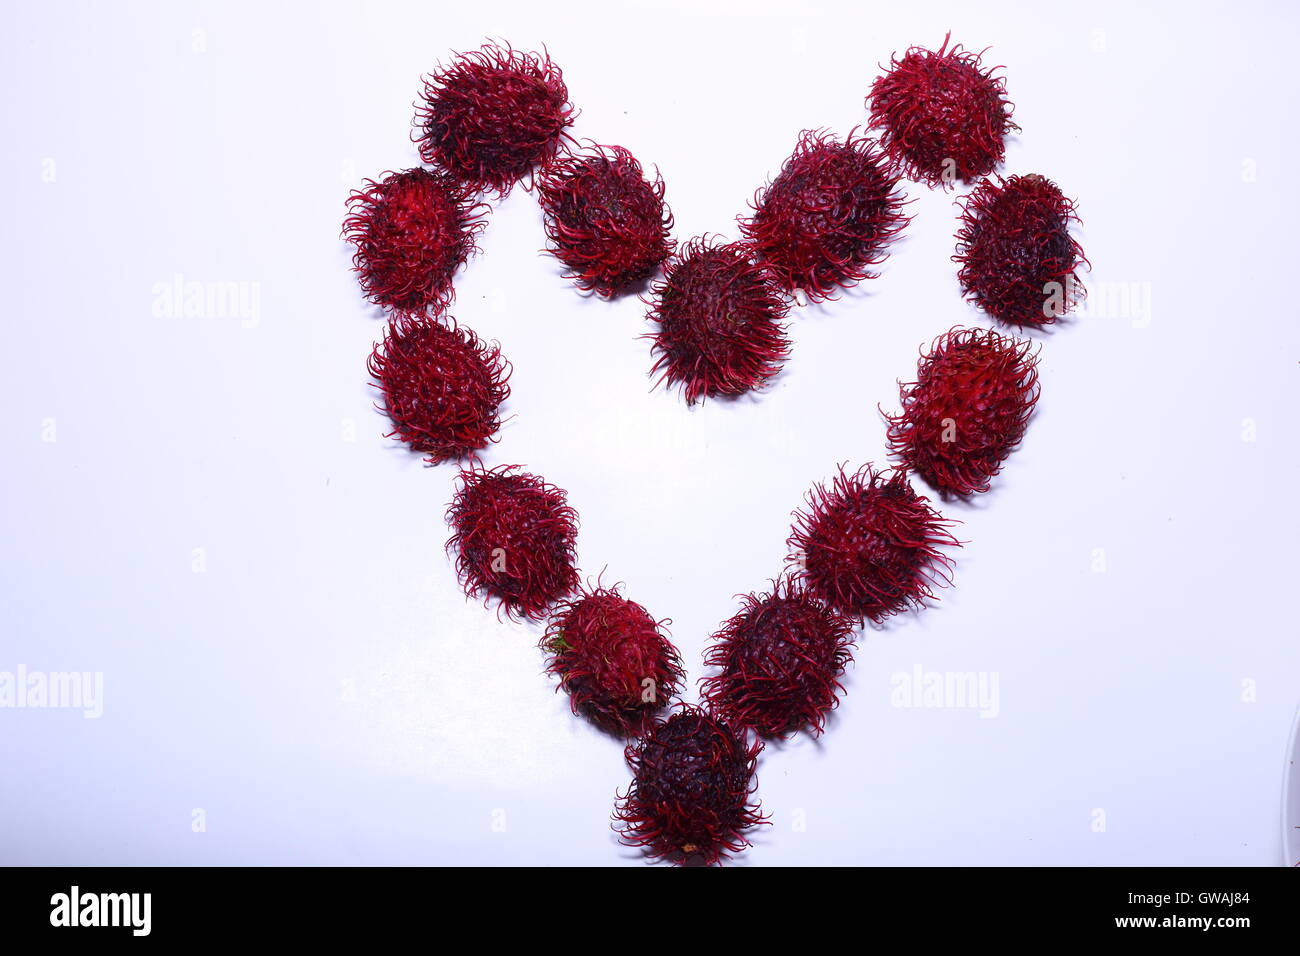 Heart with rambutan against a white background - Stock Image